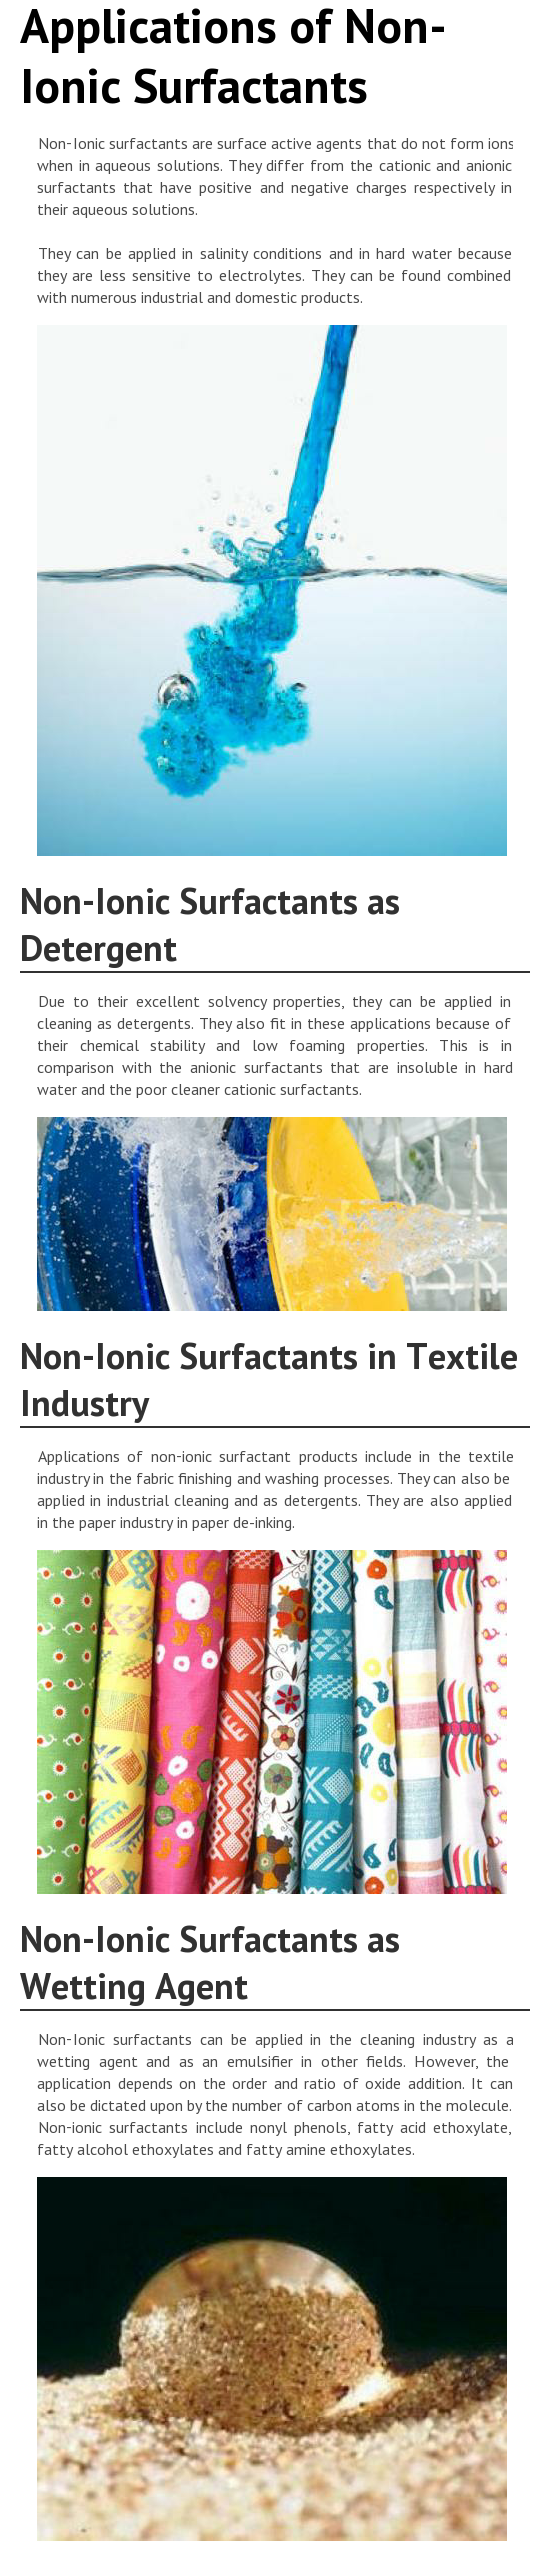 Non-Ionic Surface Active Agents & Their Industrial Applications [INFOGRAPH]